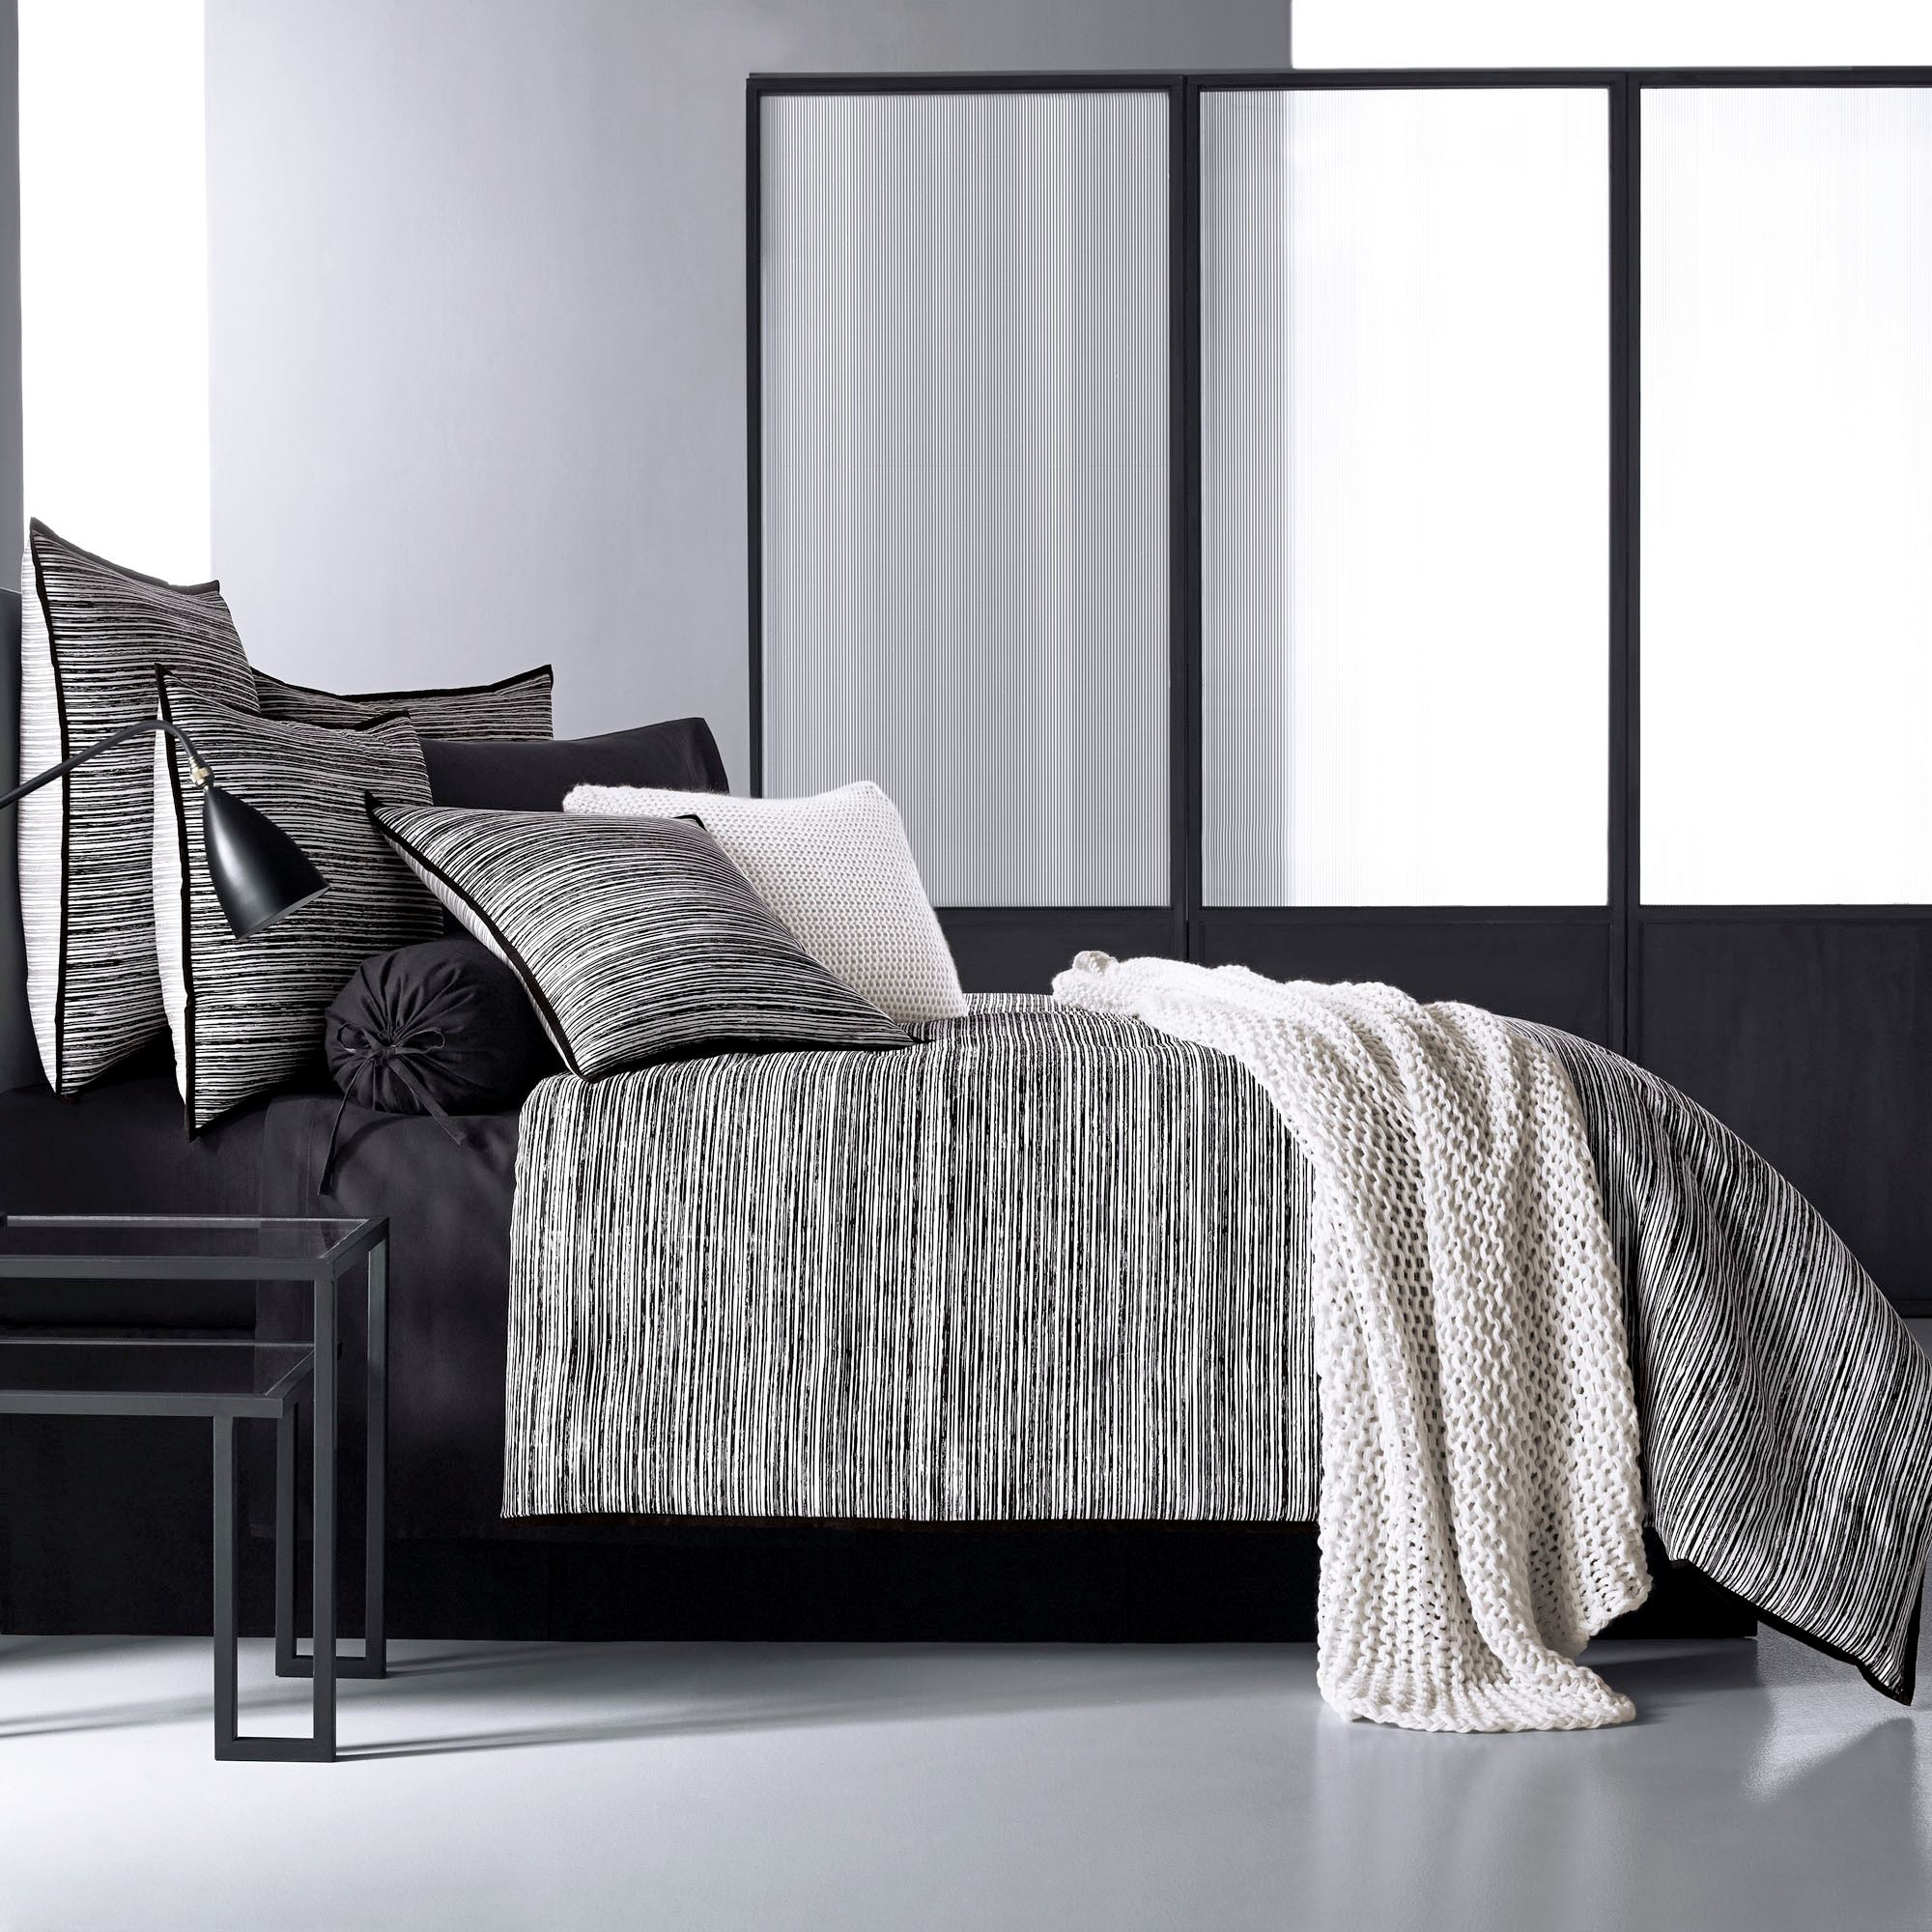 photo queen bedding white black sensational inspirations sets comforter striped and